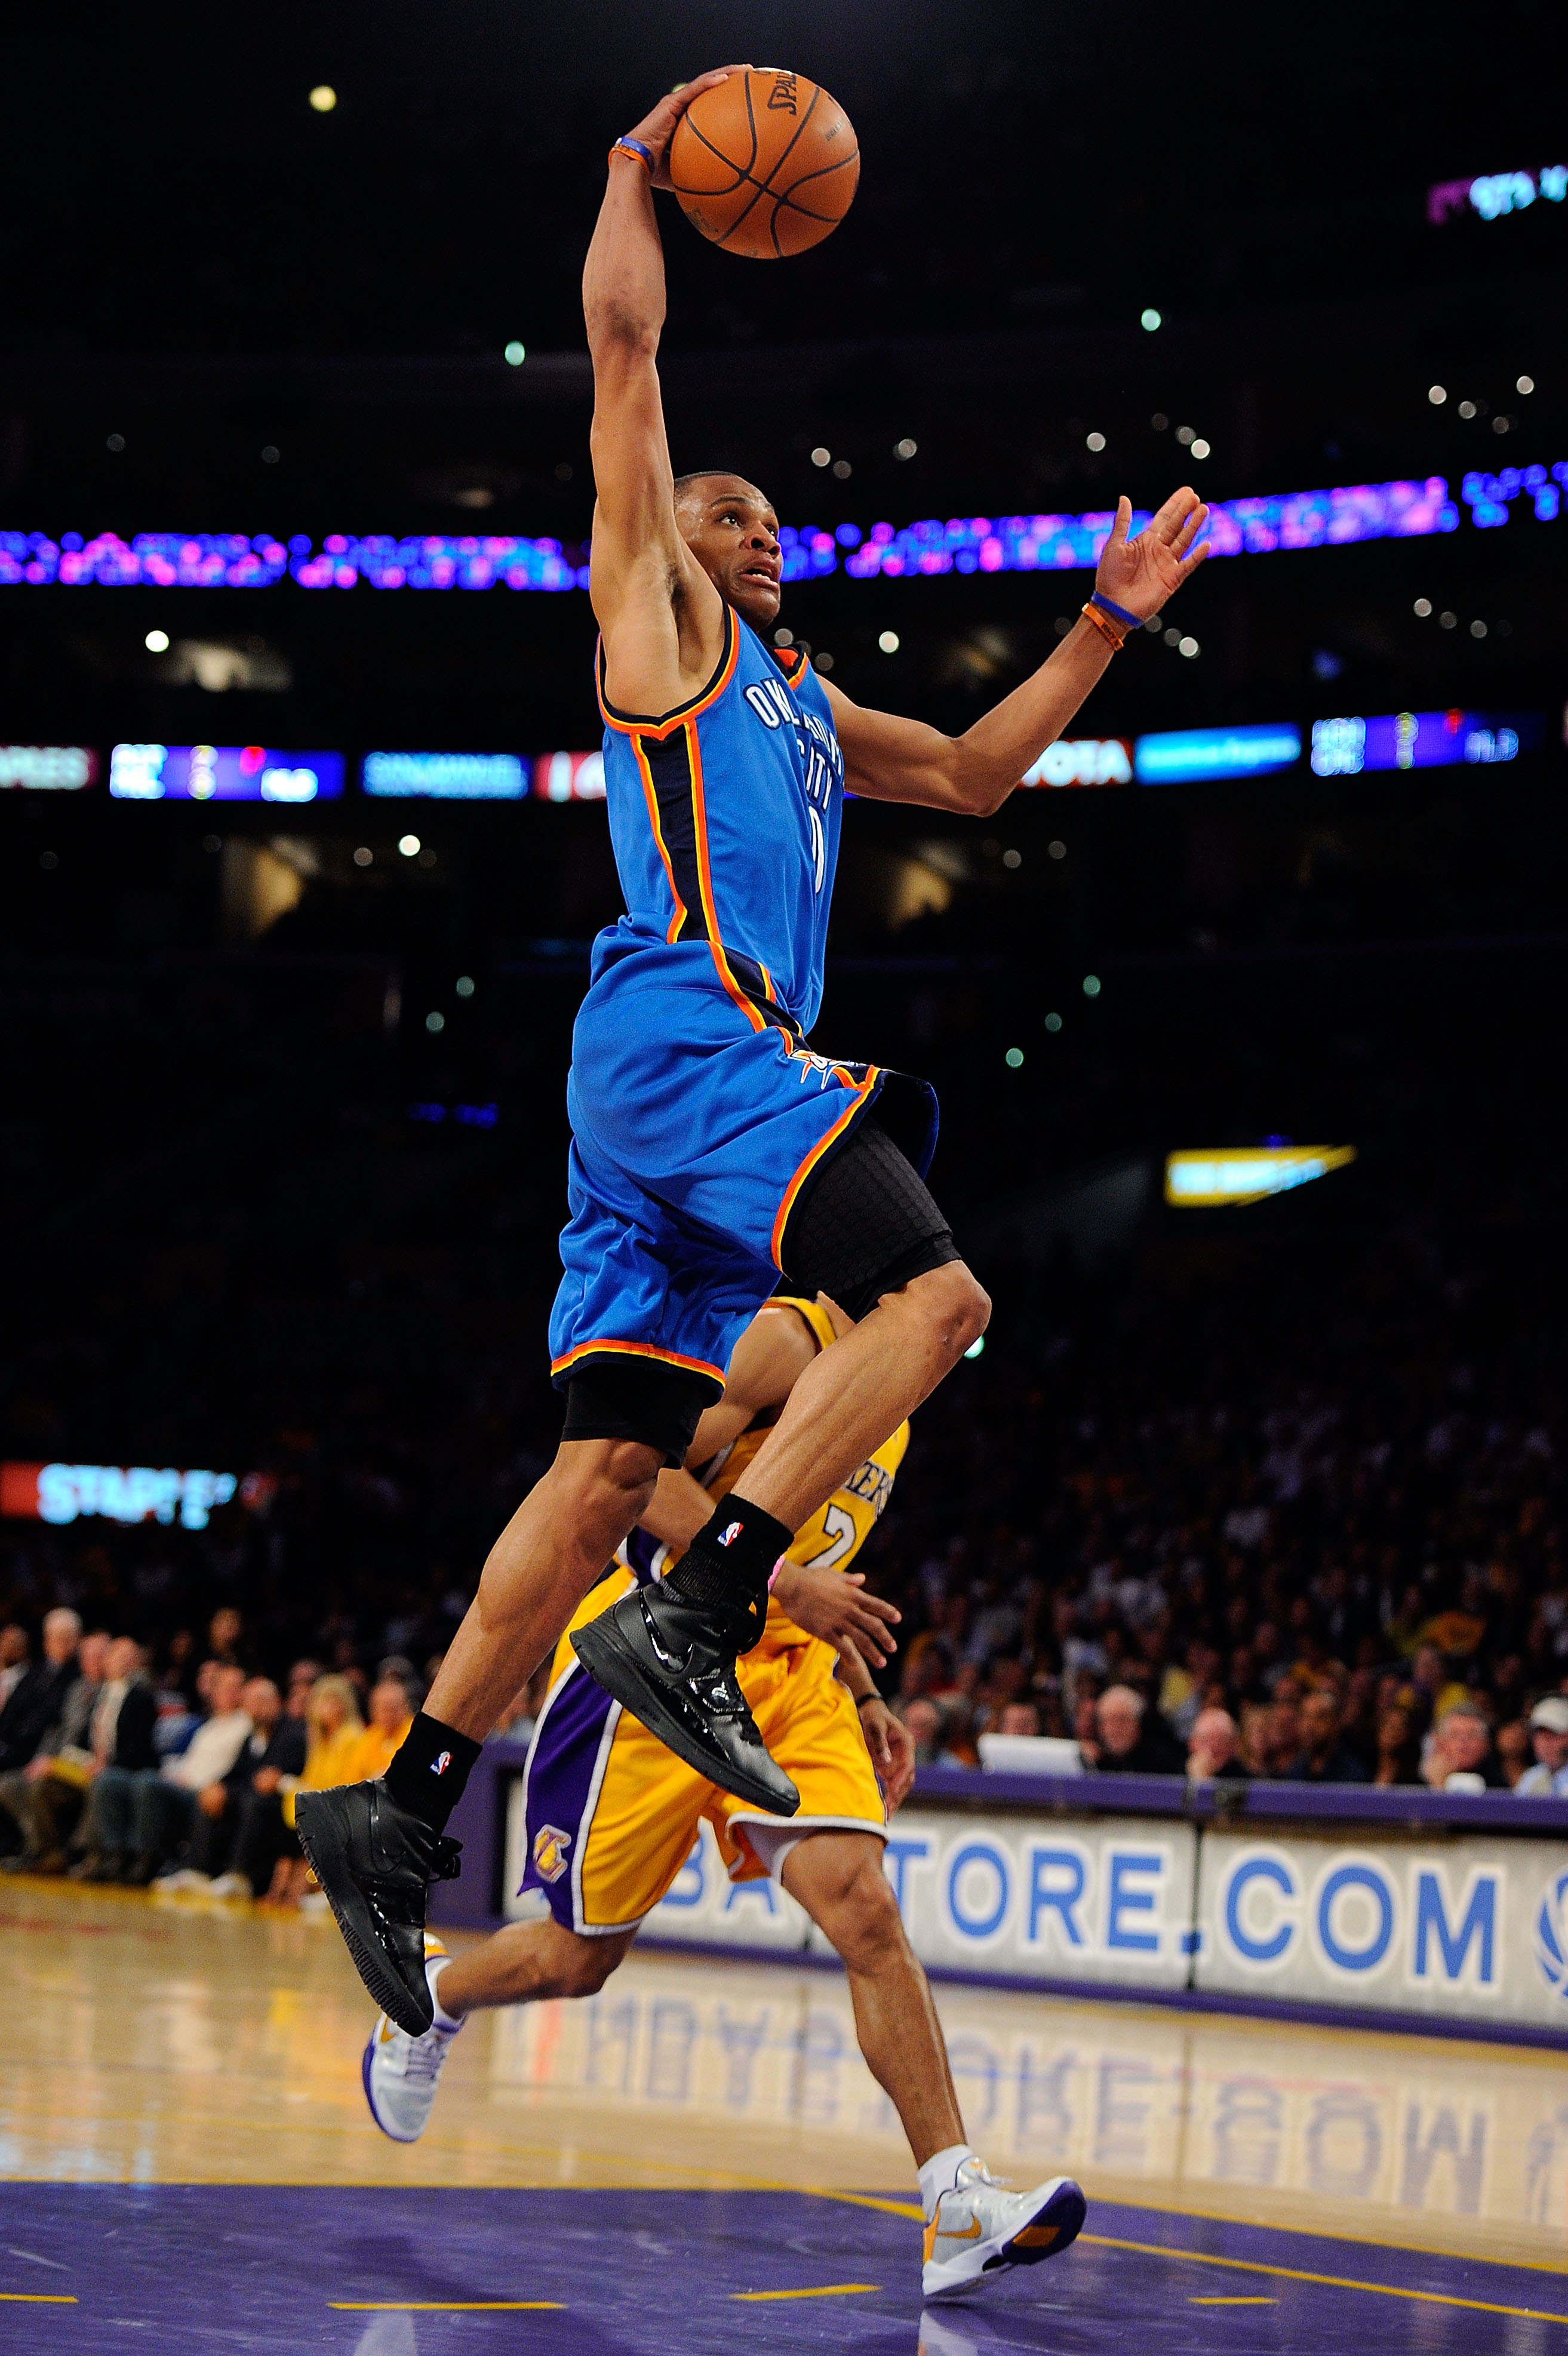 LOS ANGELES, CA - APRIL 27:  Russell Westbrook #0 of the Oklahoma City Thunder goes up for a dunk in the second quarter while taking on the Los Angeles Lakers during Game Two of the Western Conference Quarterfinals of the 2010 NBA Playoffs at Staples Cent